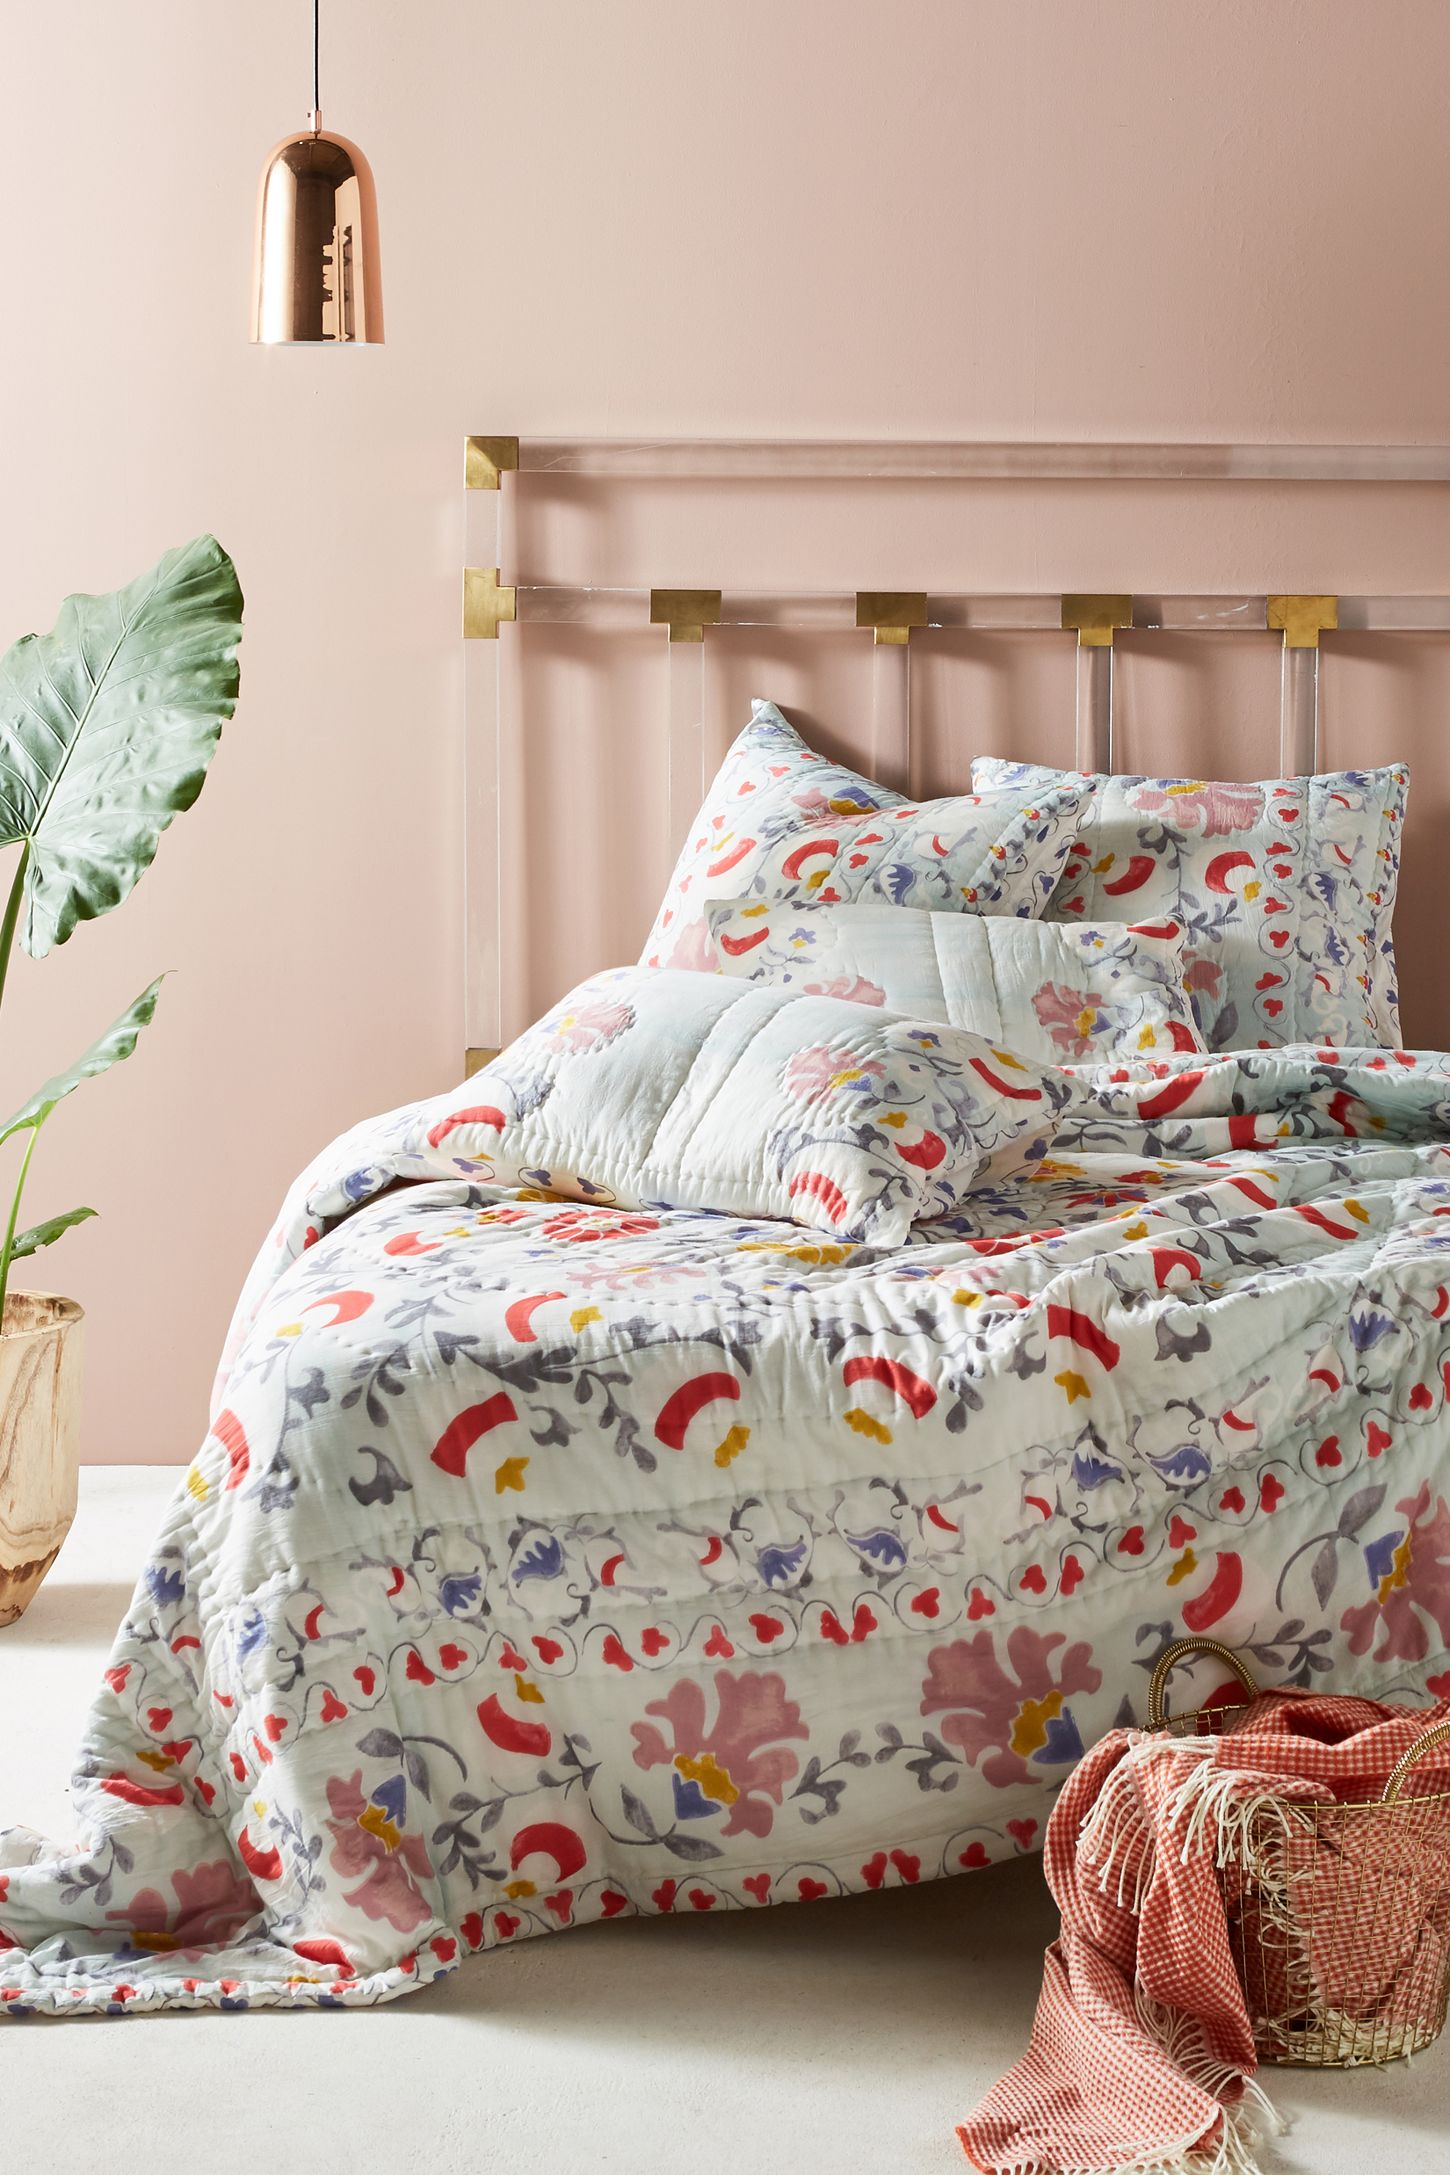 Shop Unique Quilts & Bedding Coverlets | Anthropologie : bedding quilts - Adamdwight.com